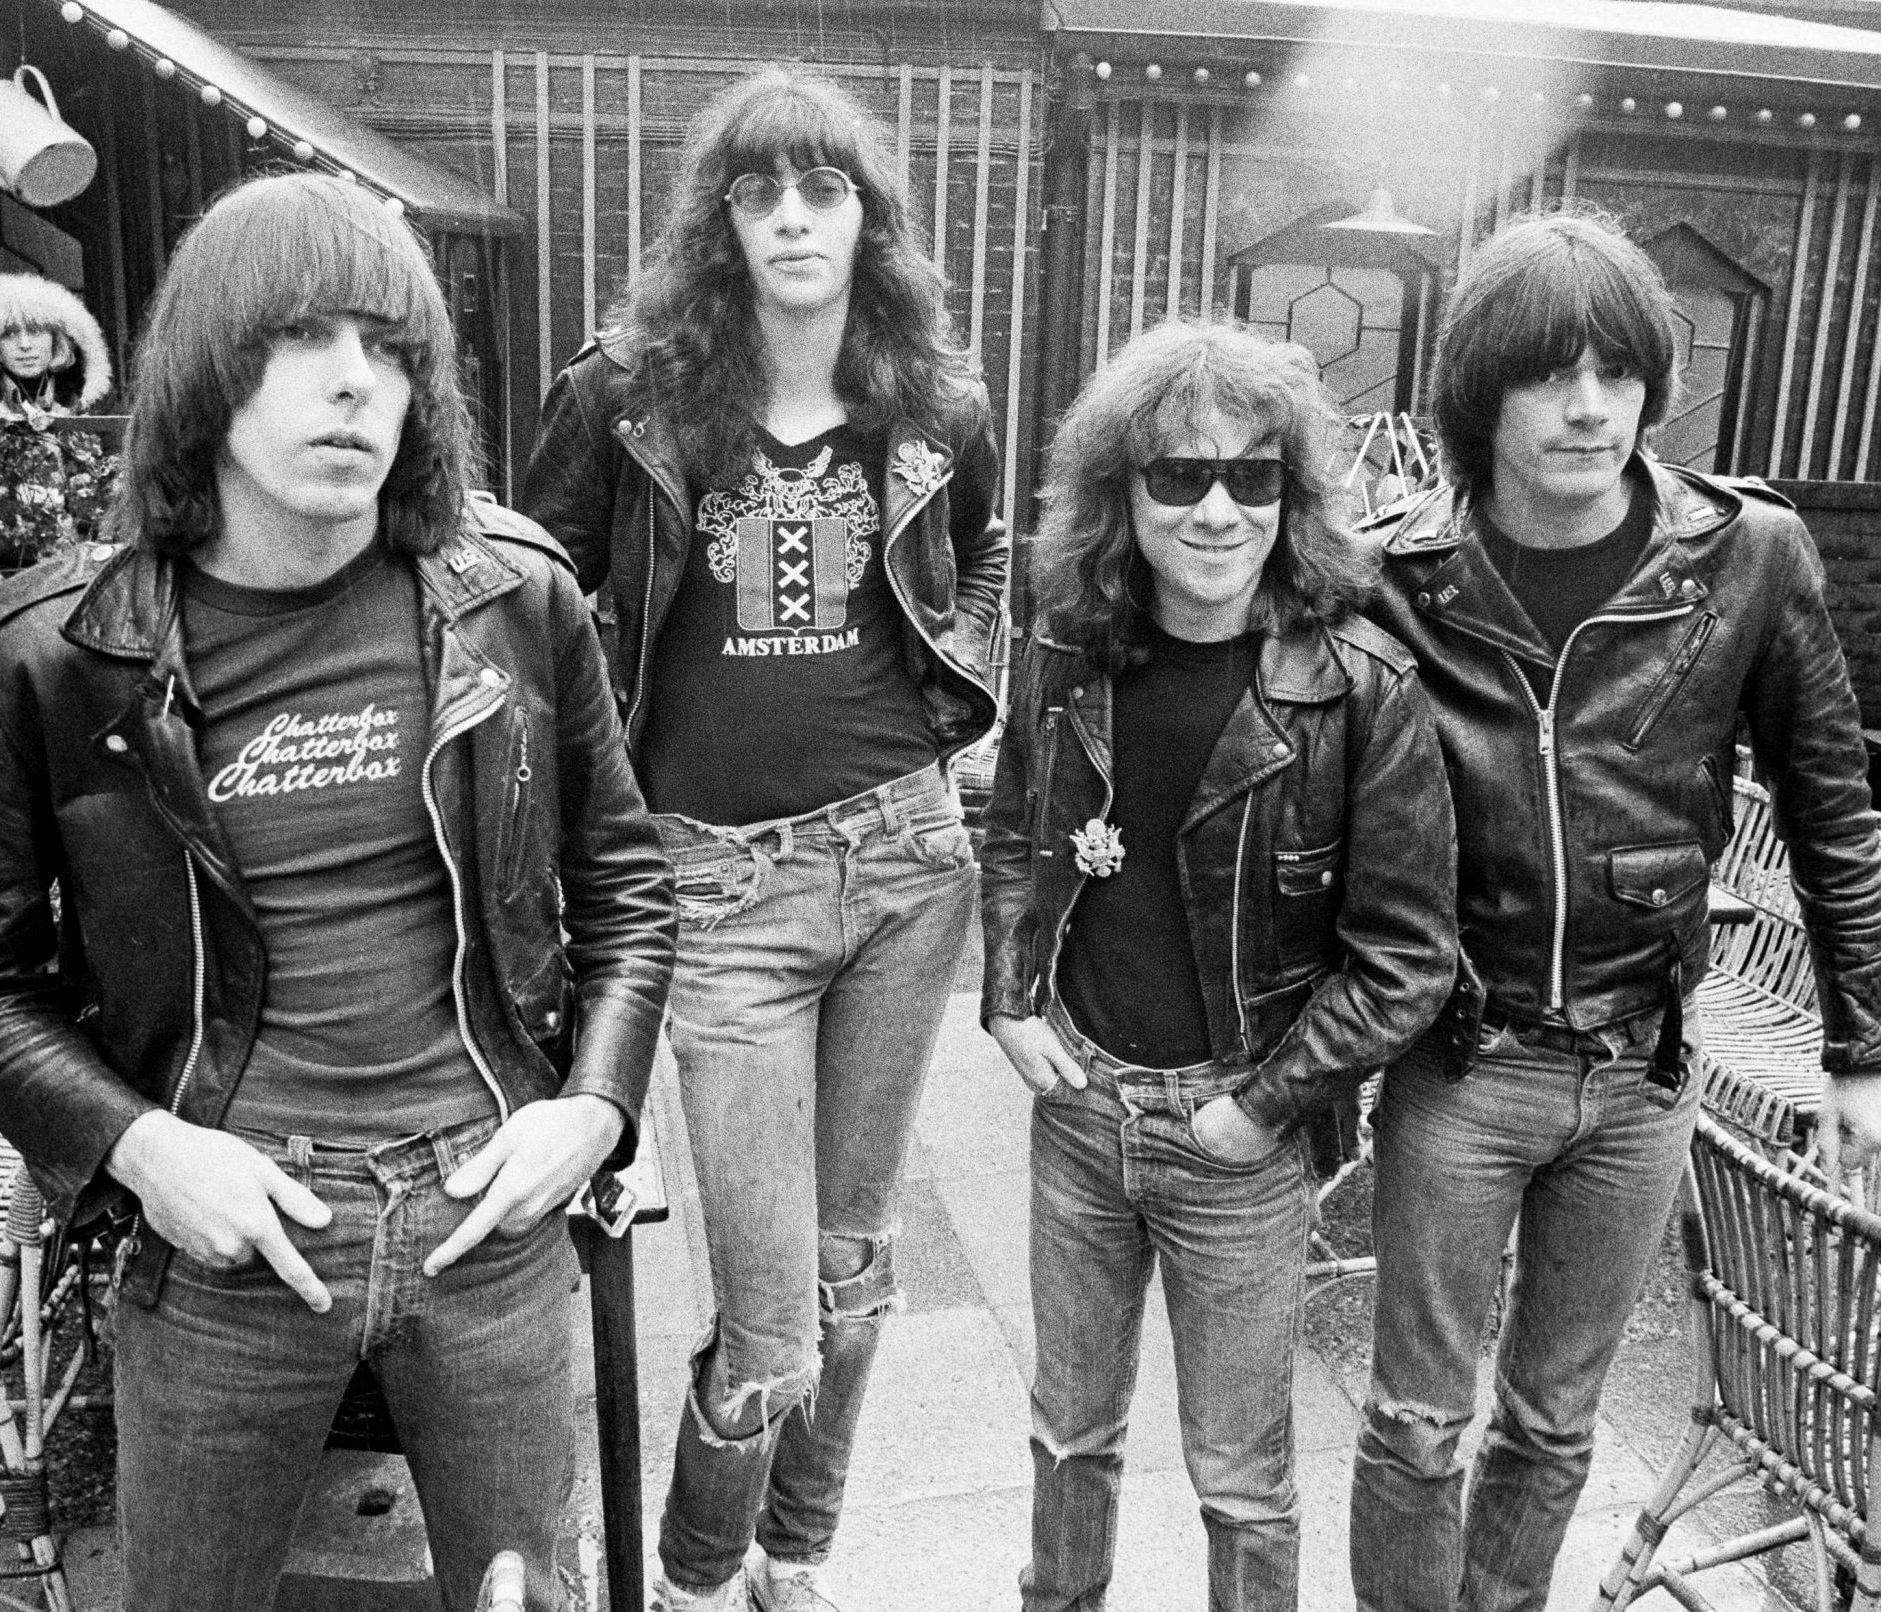 rs 241794 GettyImages 86118756 scaled e1615893225923 Hey-Ho! Let's Go With 20 Facts You Might Not Have Known About The Ramones